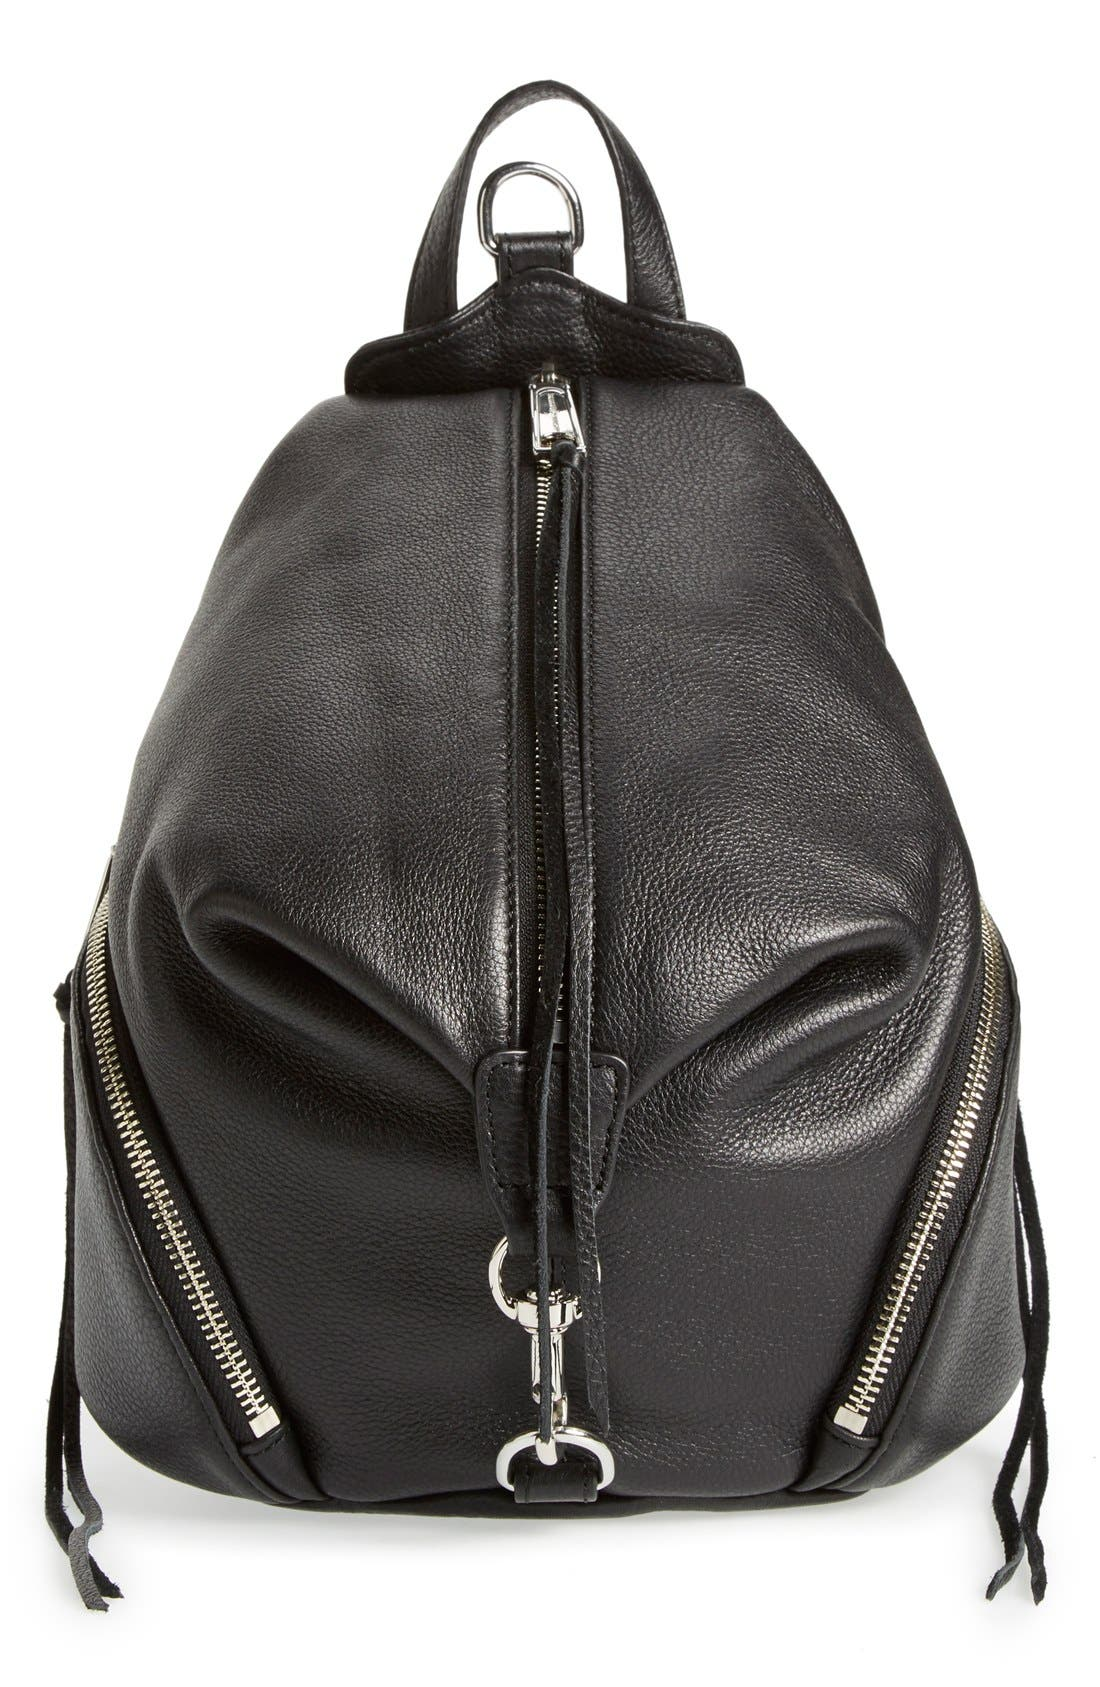 Medium Julian Backpack,                             Main thumbnail 1, color,                             Black/ Silver Hrdwr